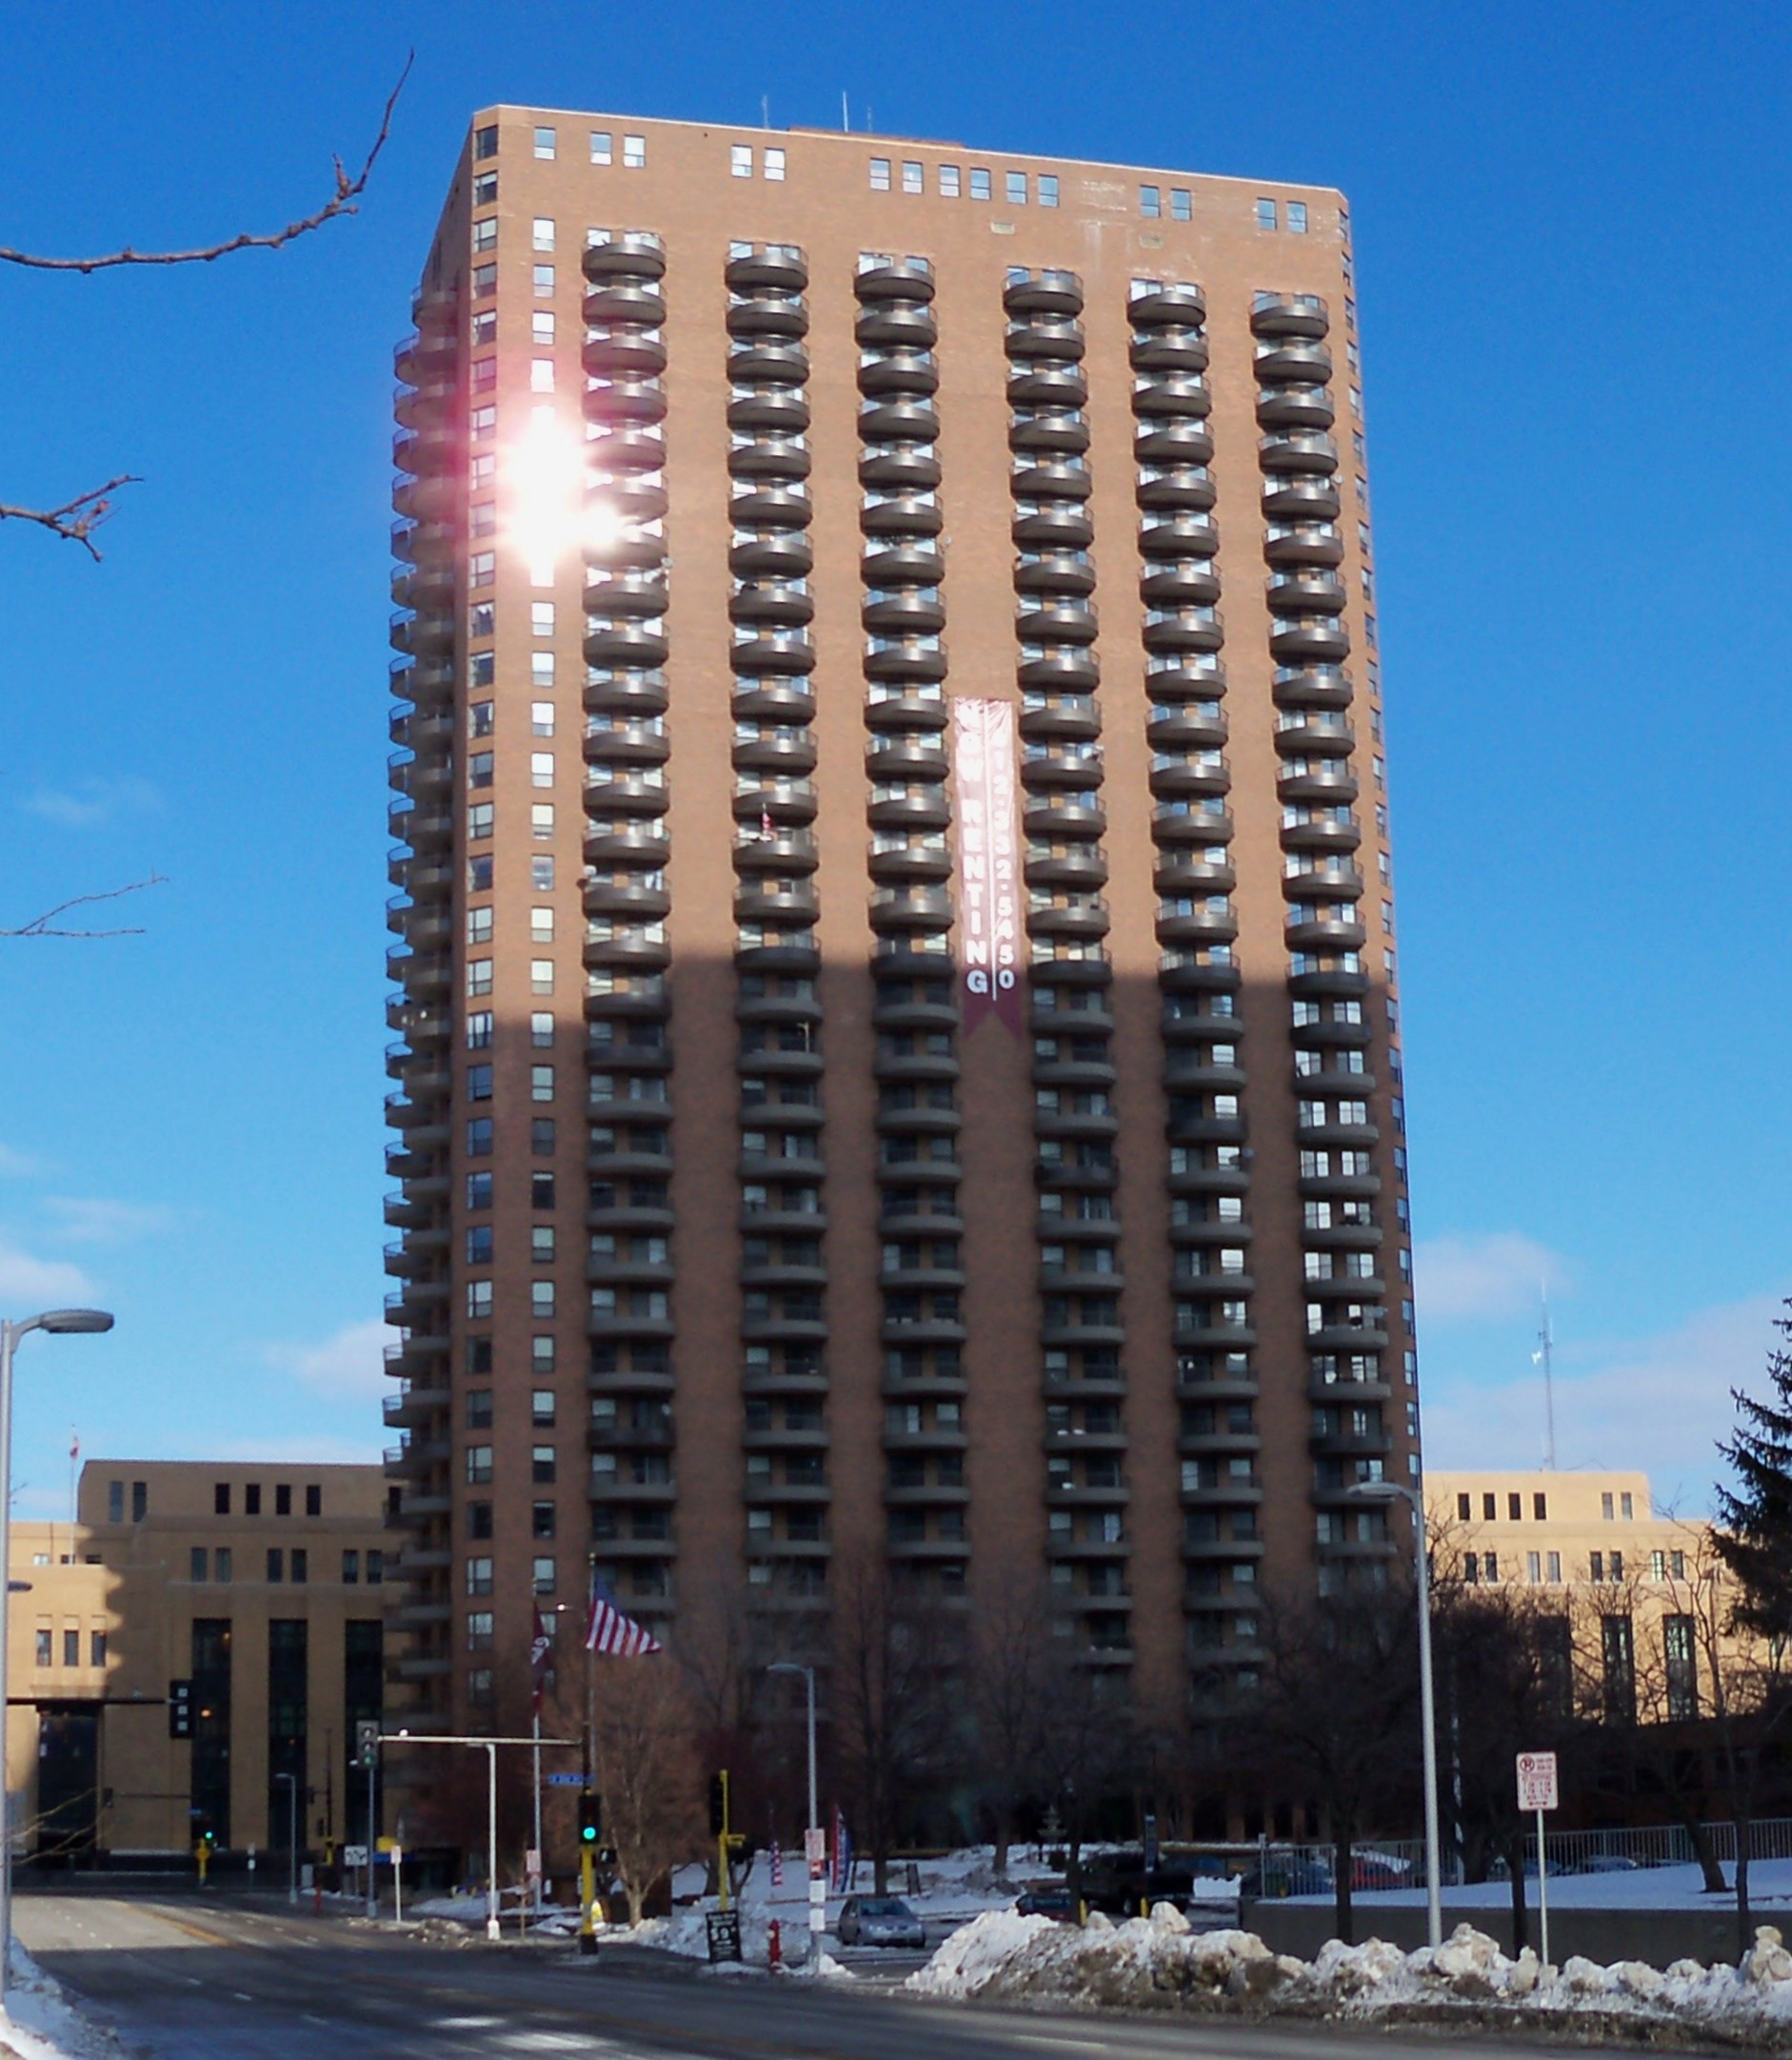 Apartments In Downtown: Indian Events, Roommates, Day Care, Jobs